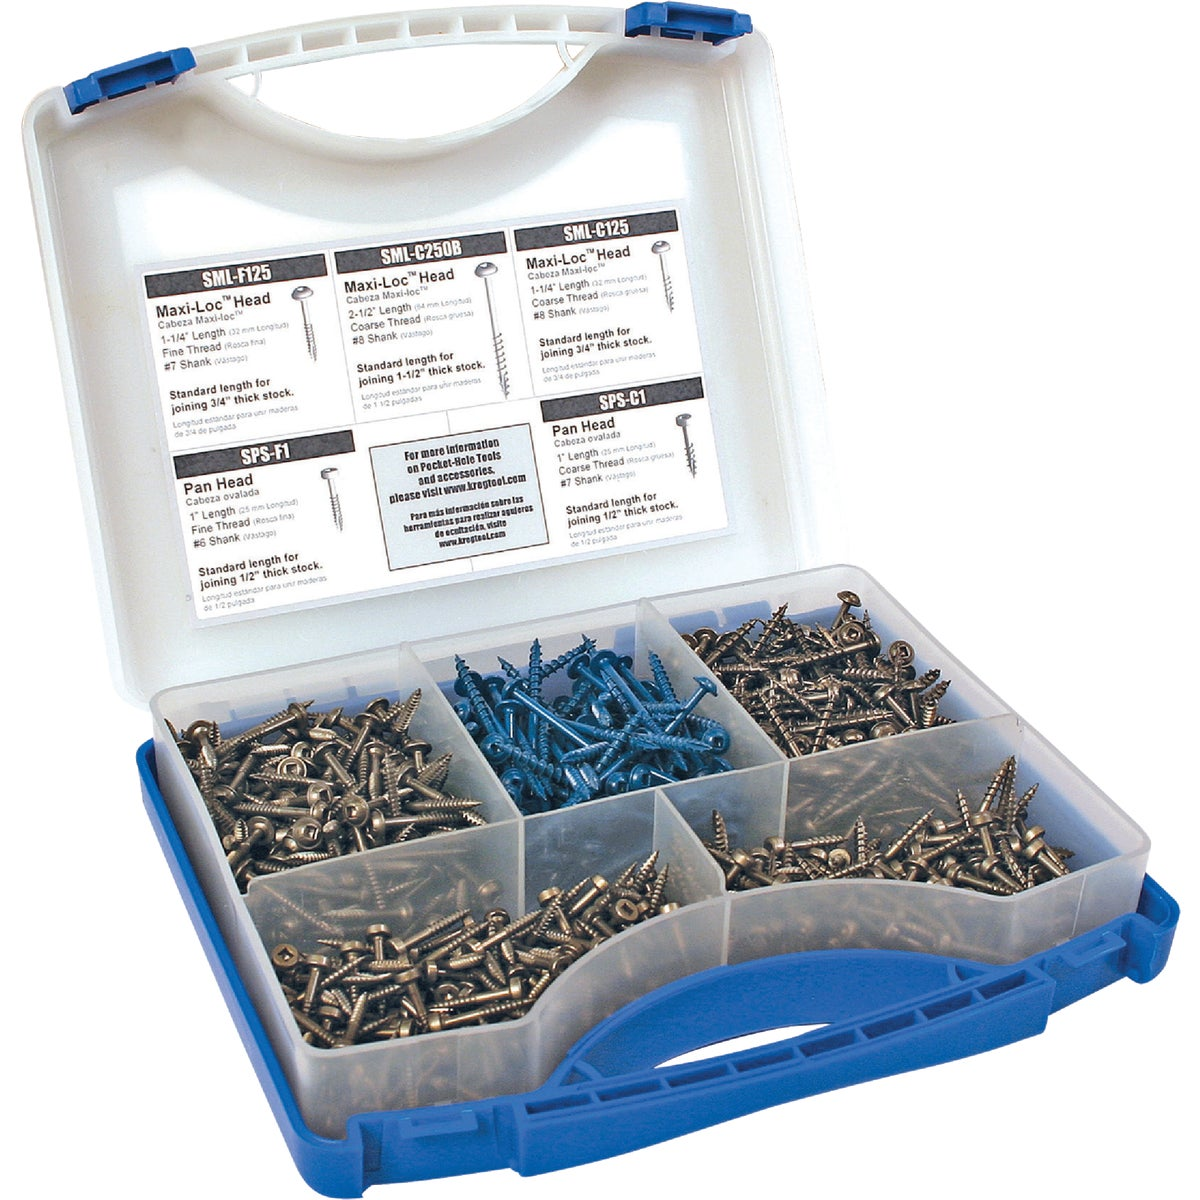 POCKET SCREW KIT - SK03 by Kreg Tool Company